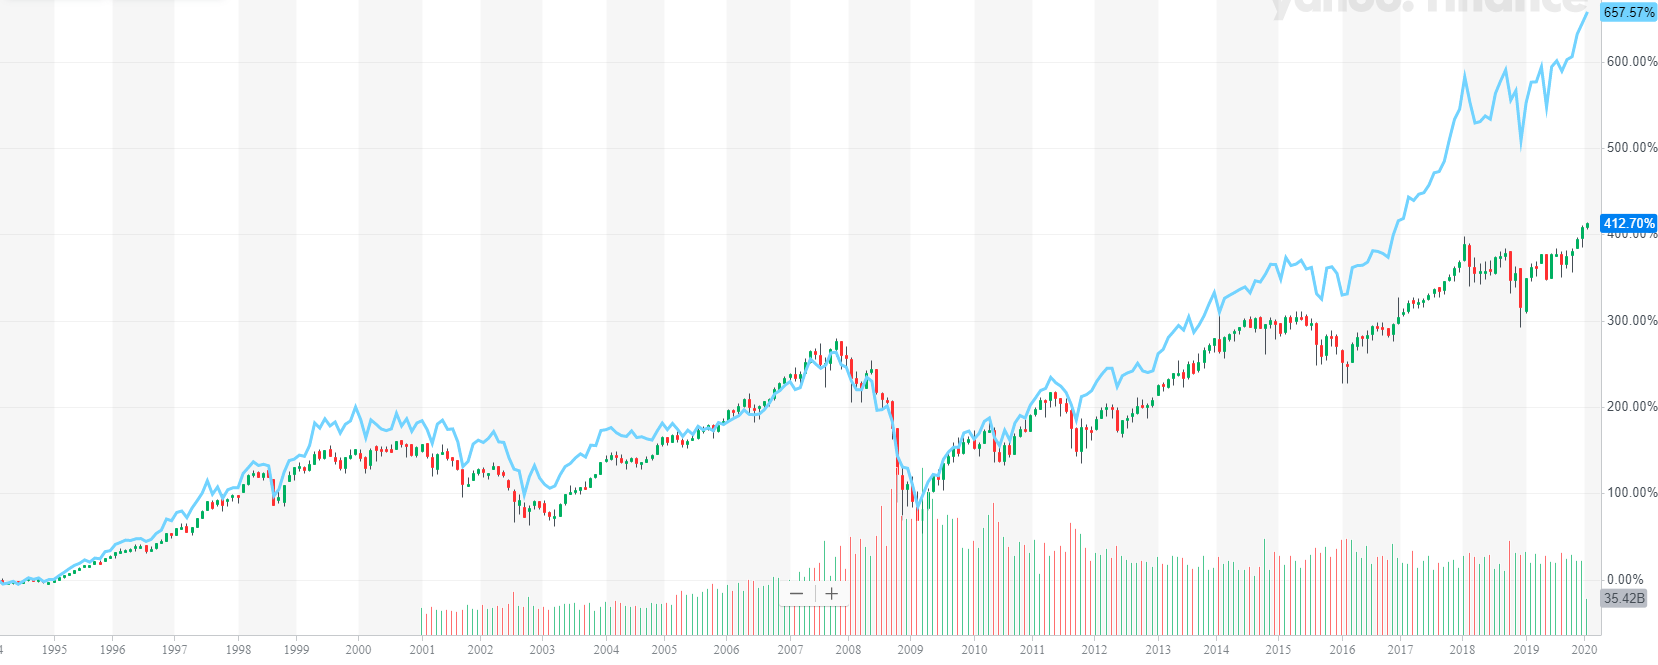 NYSE Composite Index vs Dow